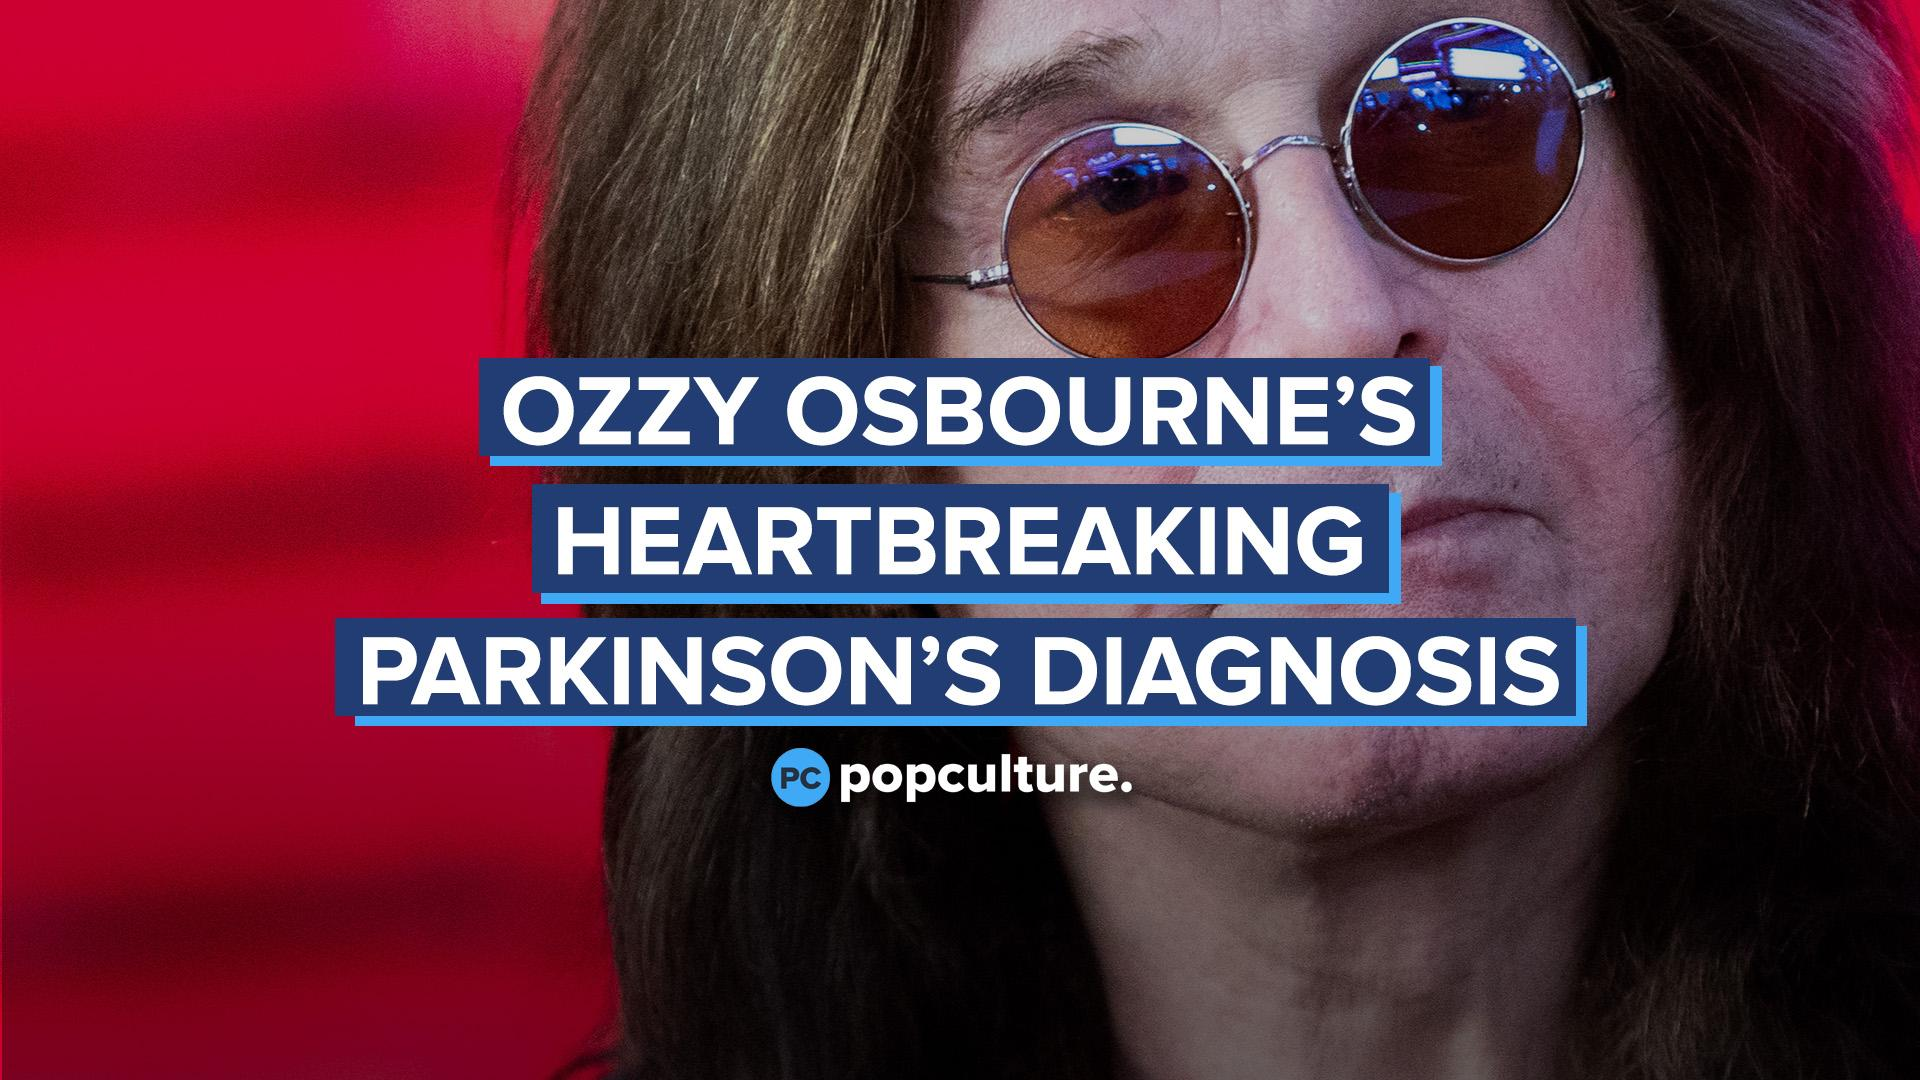 Ozzy Osbourne's Heartbreaking Parkinson's Diagnosis screen capture